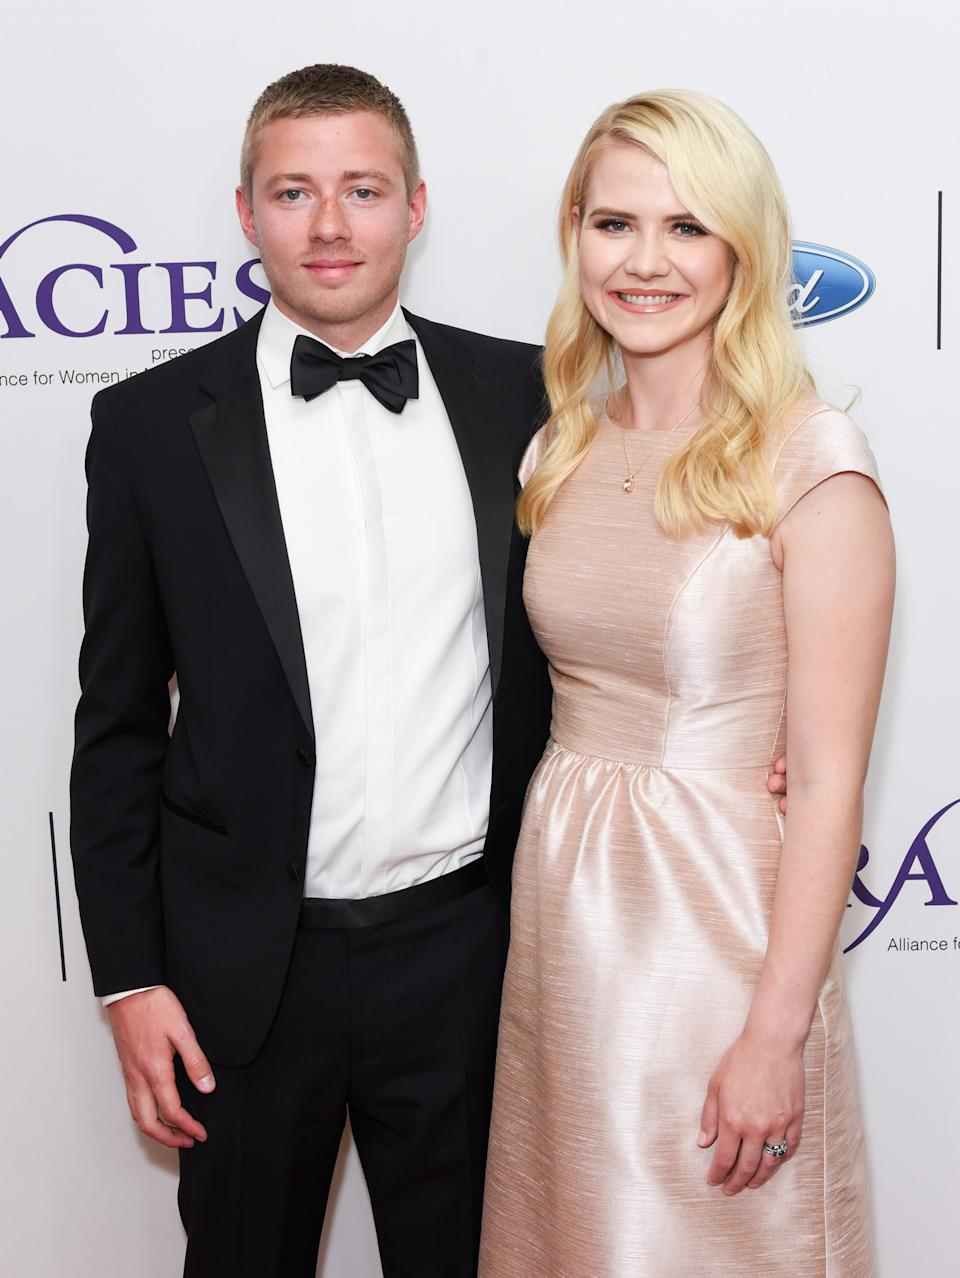 Smart and husband Matthew Gilmour.  (Photo by Presley Ann/WireImage)